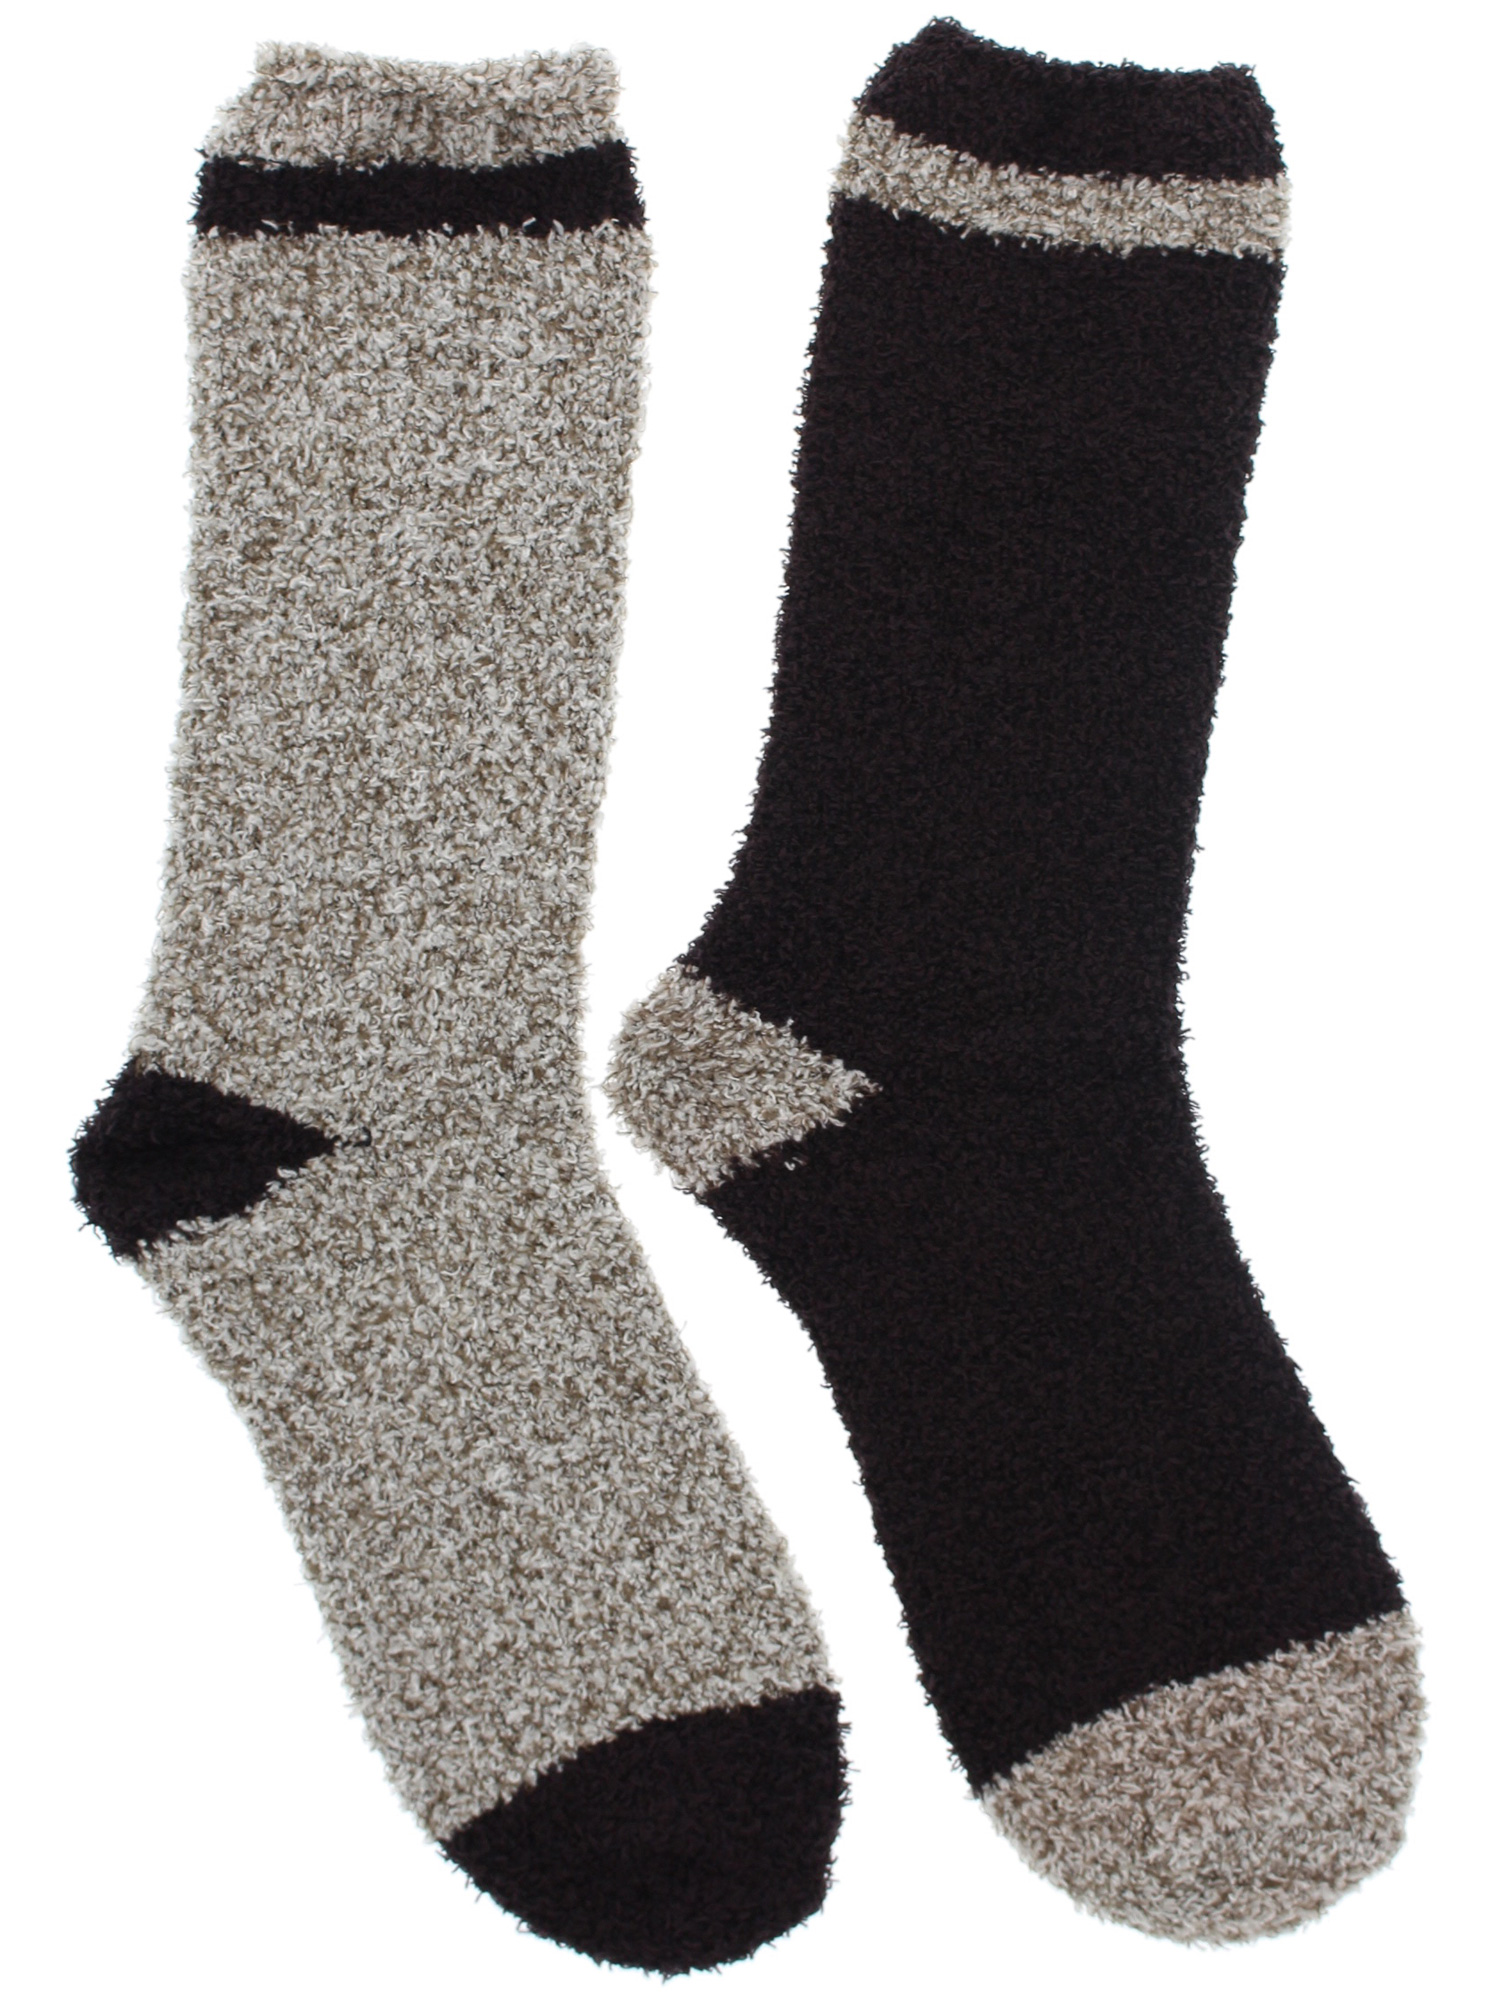 Beverly Hills Polo Club Men's Thick Fuzzy Slipper Socks (2Pr), Brown